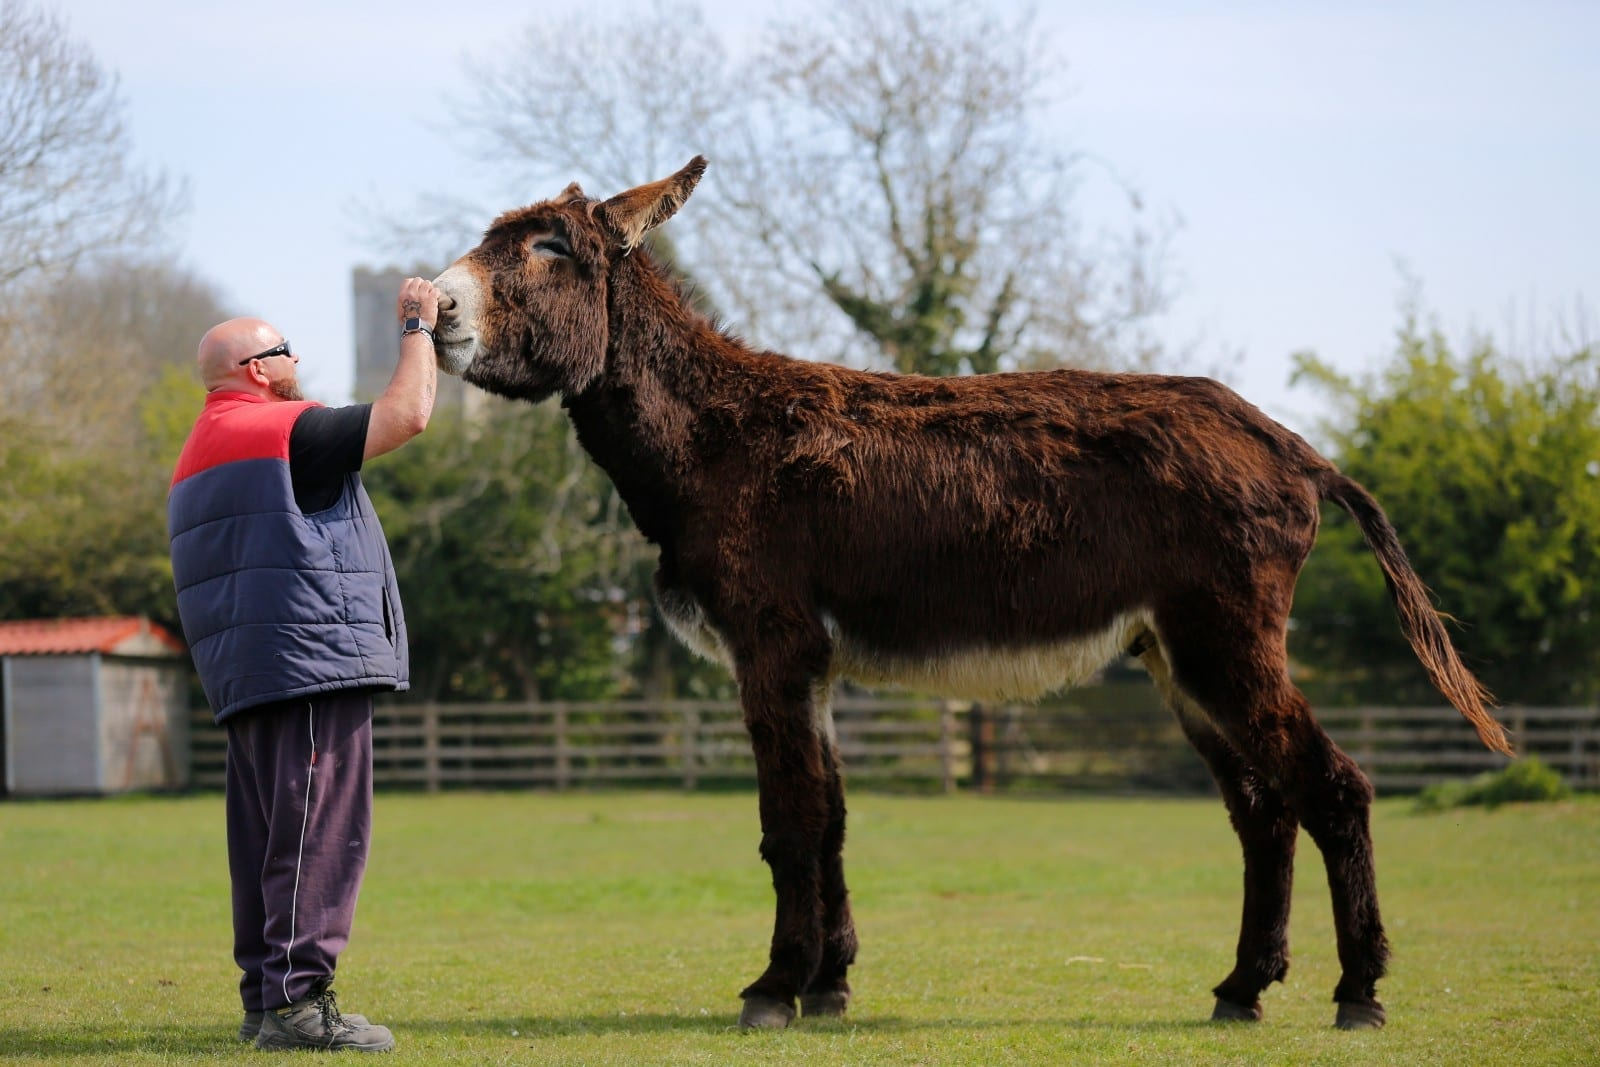 Britain's Biggest DONKEY Is Edging Closer To Becoming The World's Tallest - And Now Measures Just A Quarter Of An Inch Off The Record